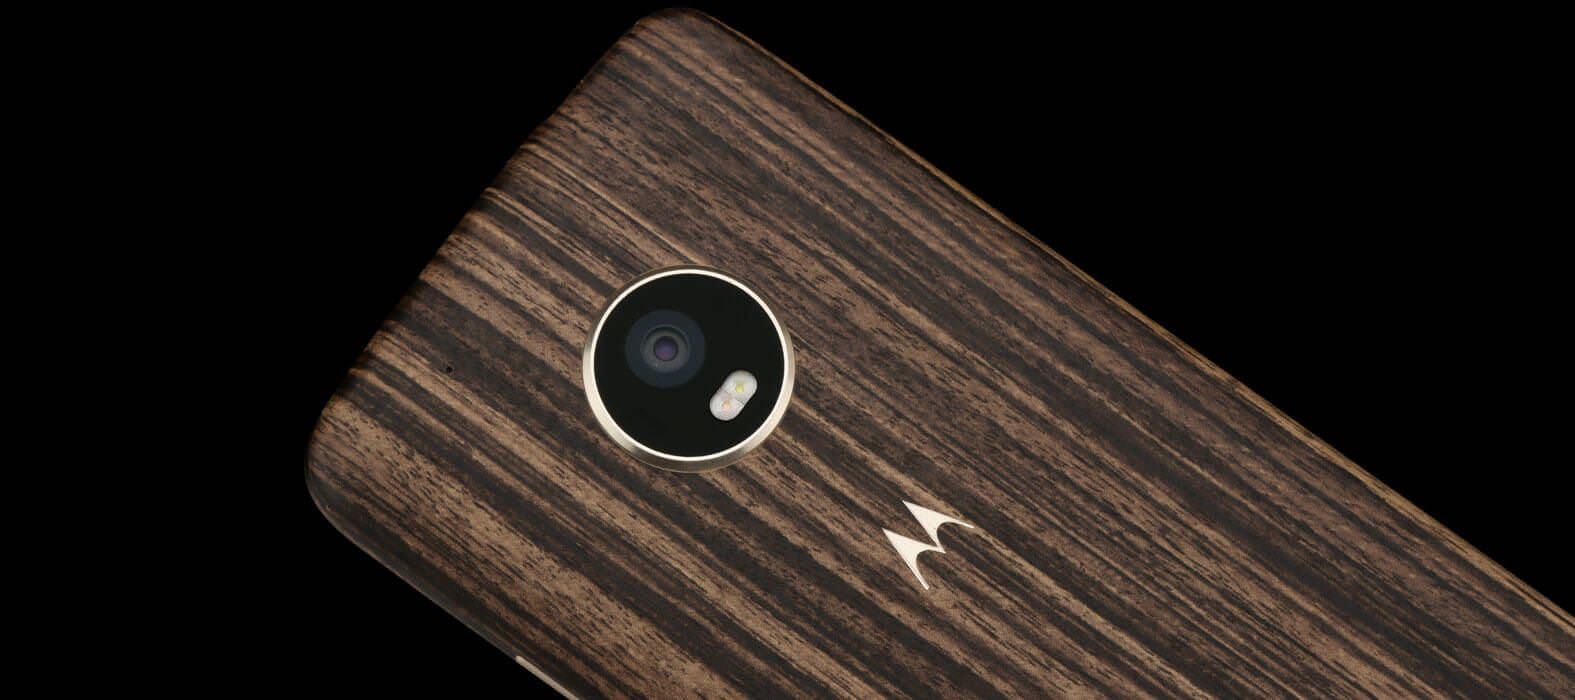 Moto G5 Plus Zebra wood skins & wraps